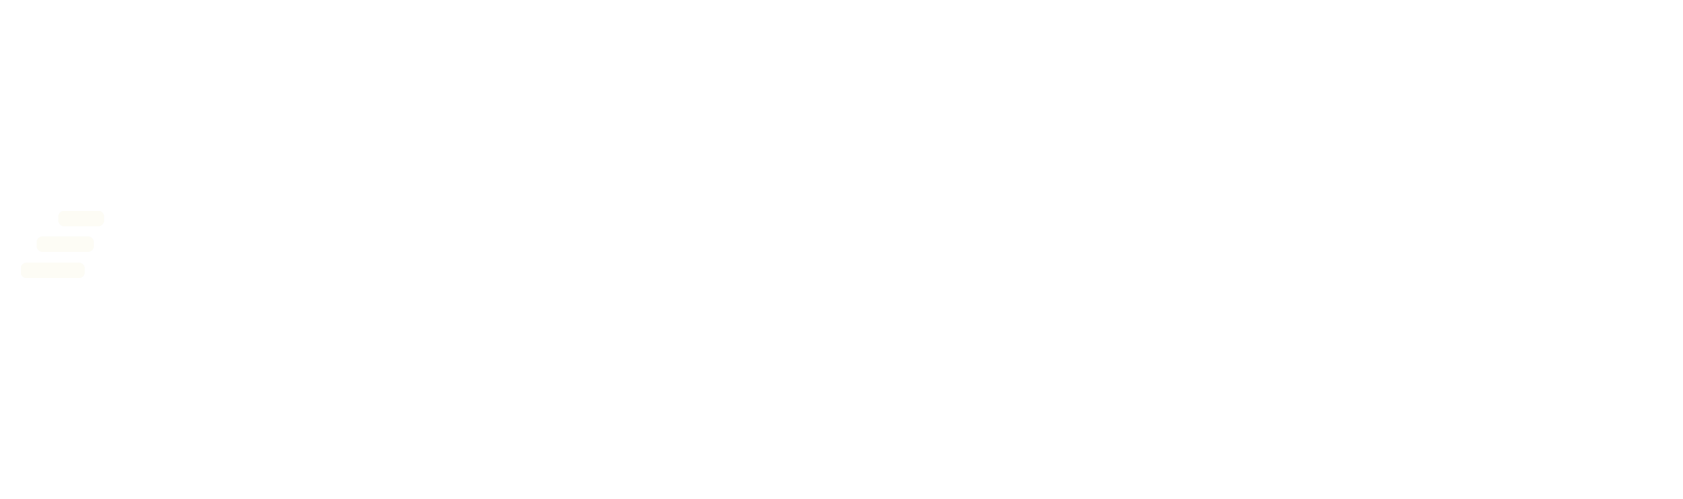 Fast auto parts - Partly customer